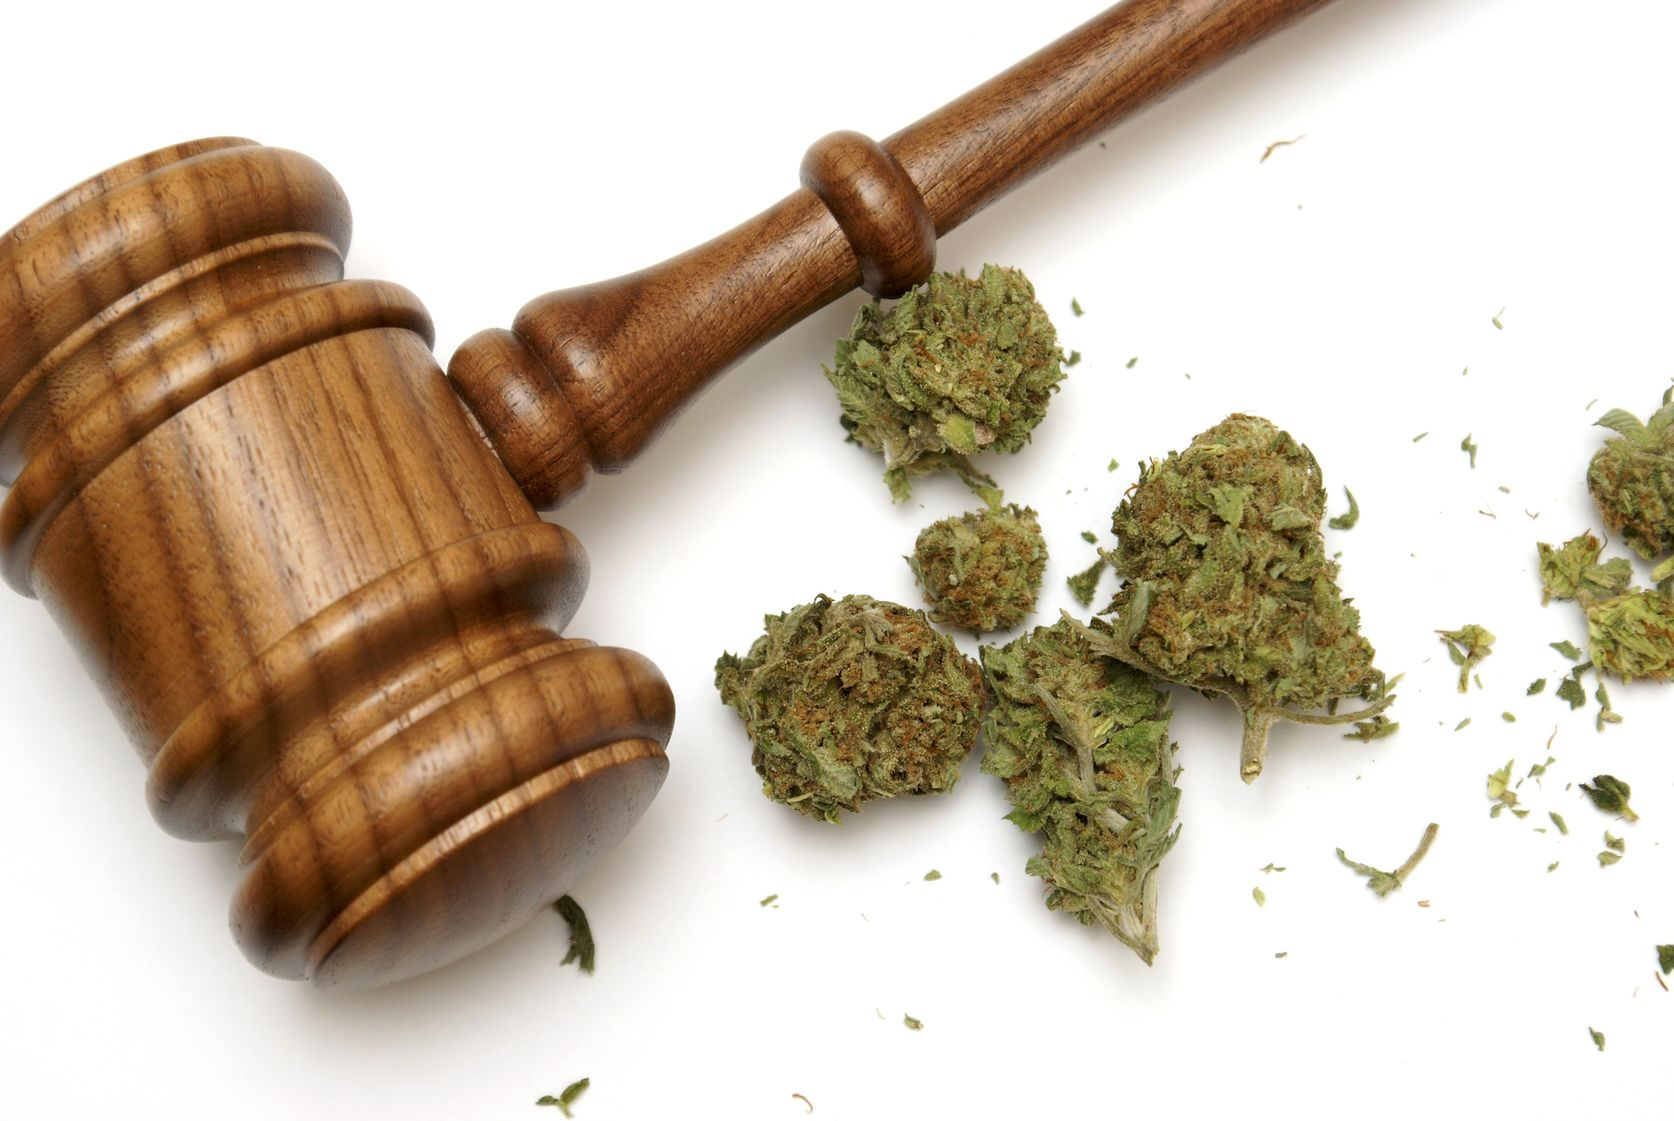 On October 23, the Michigan Court of Appeals ruled that workers who are state-approved users of medical marijuana are entitled to receive unemployment compensation if fired solely for testing positive for drugs.